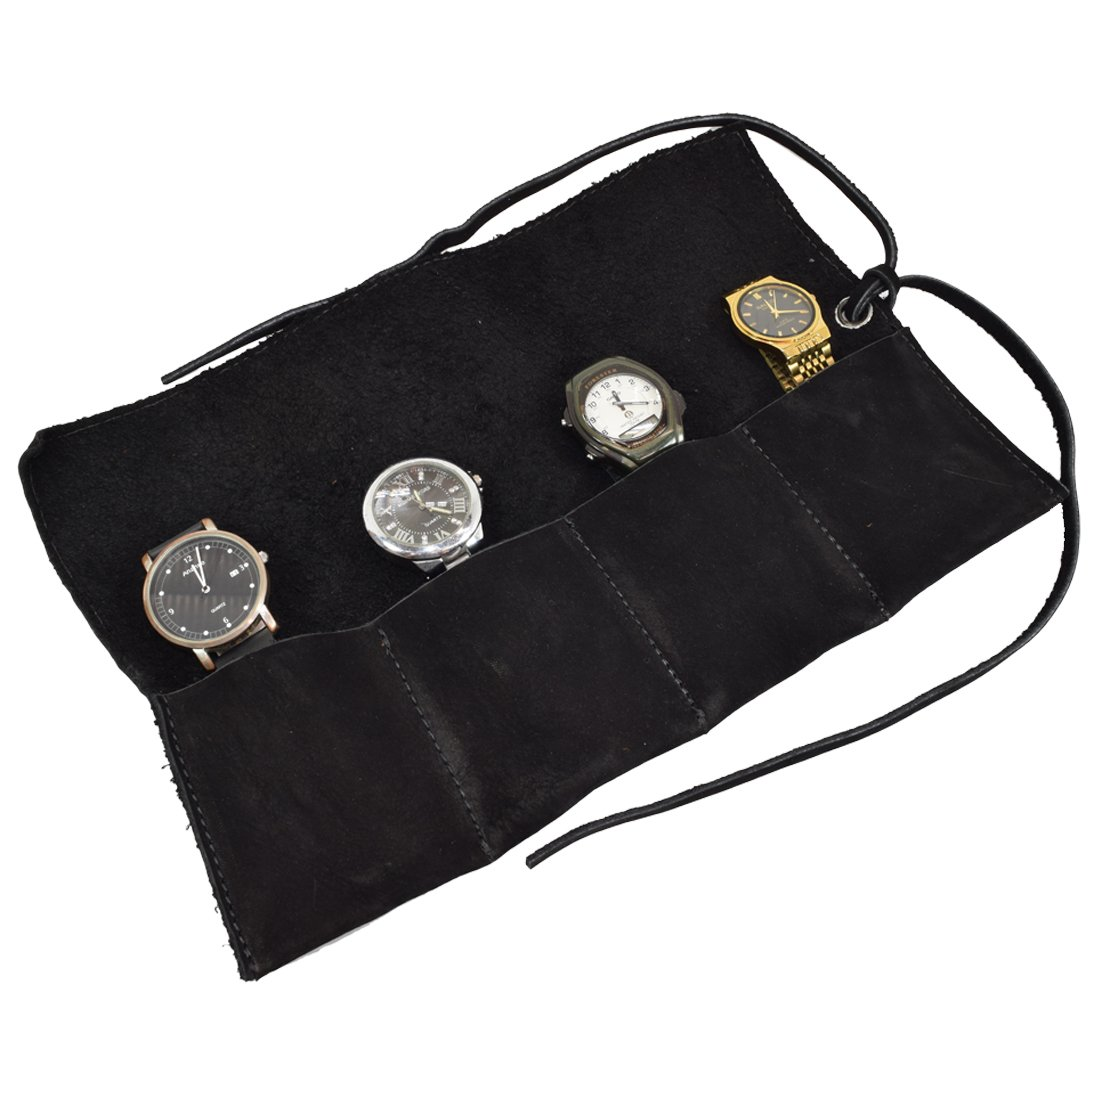 Soft Leather Travel Watch Roll Organizer Holds Up To 4 Watches Handmade by Hide & Drink :: Charcoal Suede